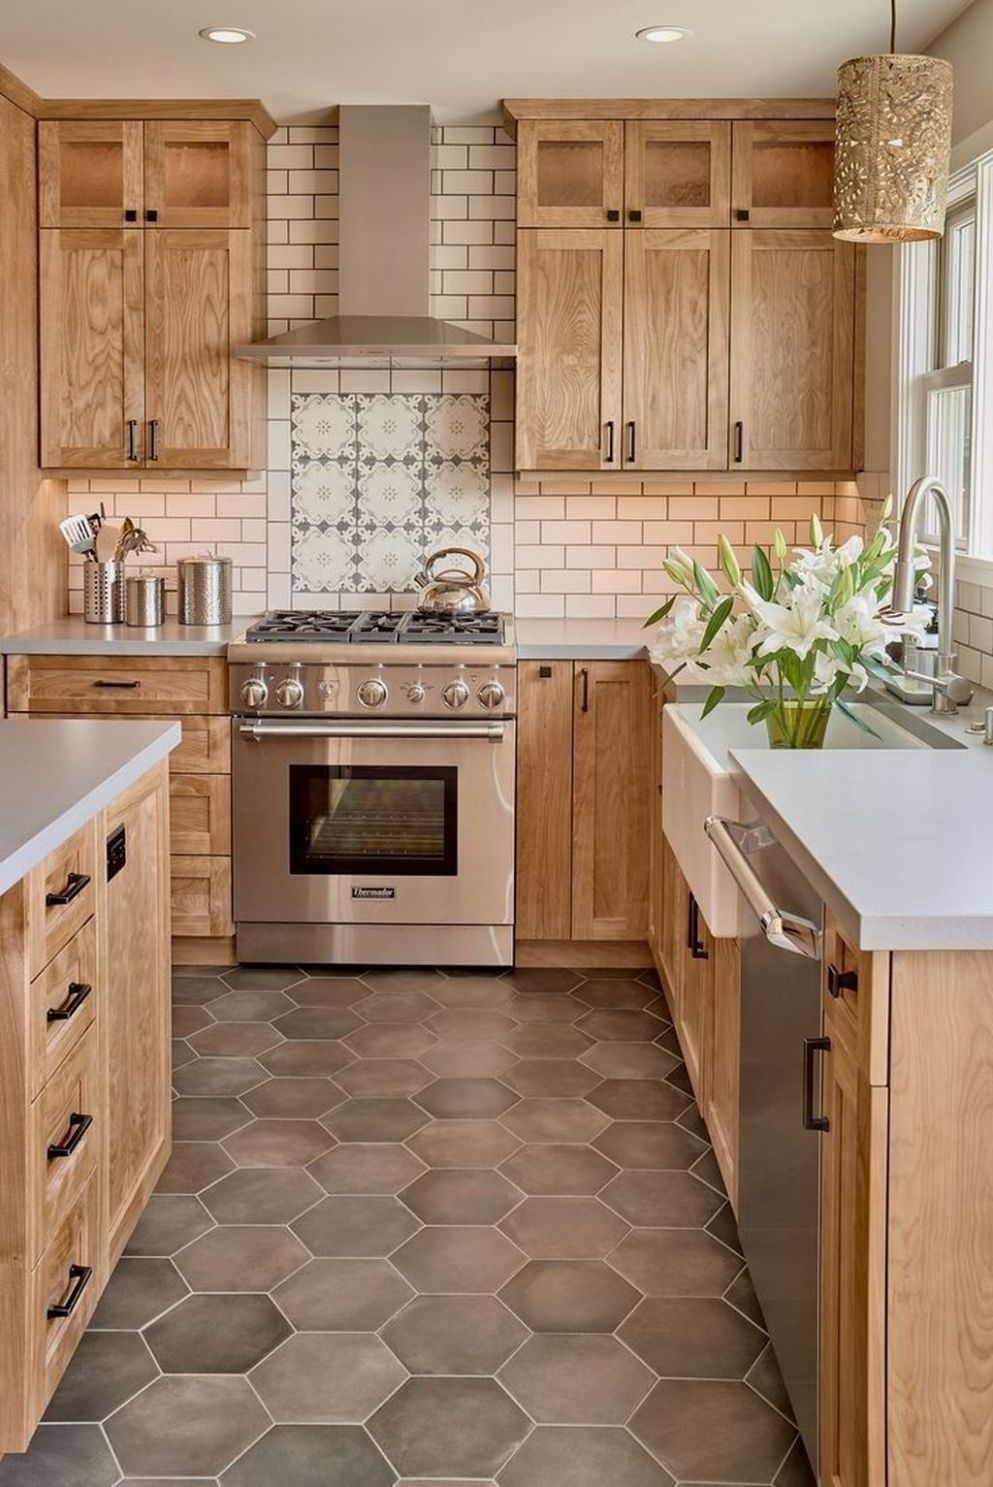 12 The Best Modern Farmhouse Kitchen Design Ideas To Blend Modern ...